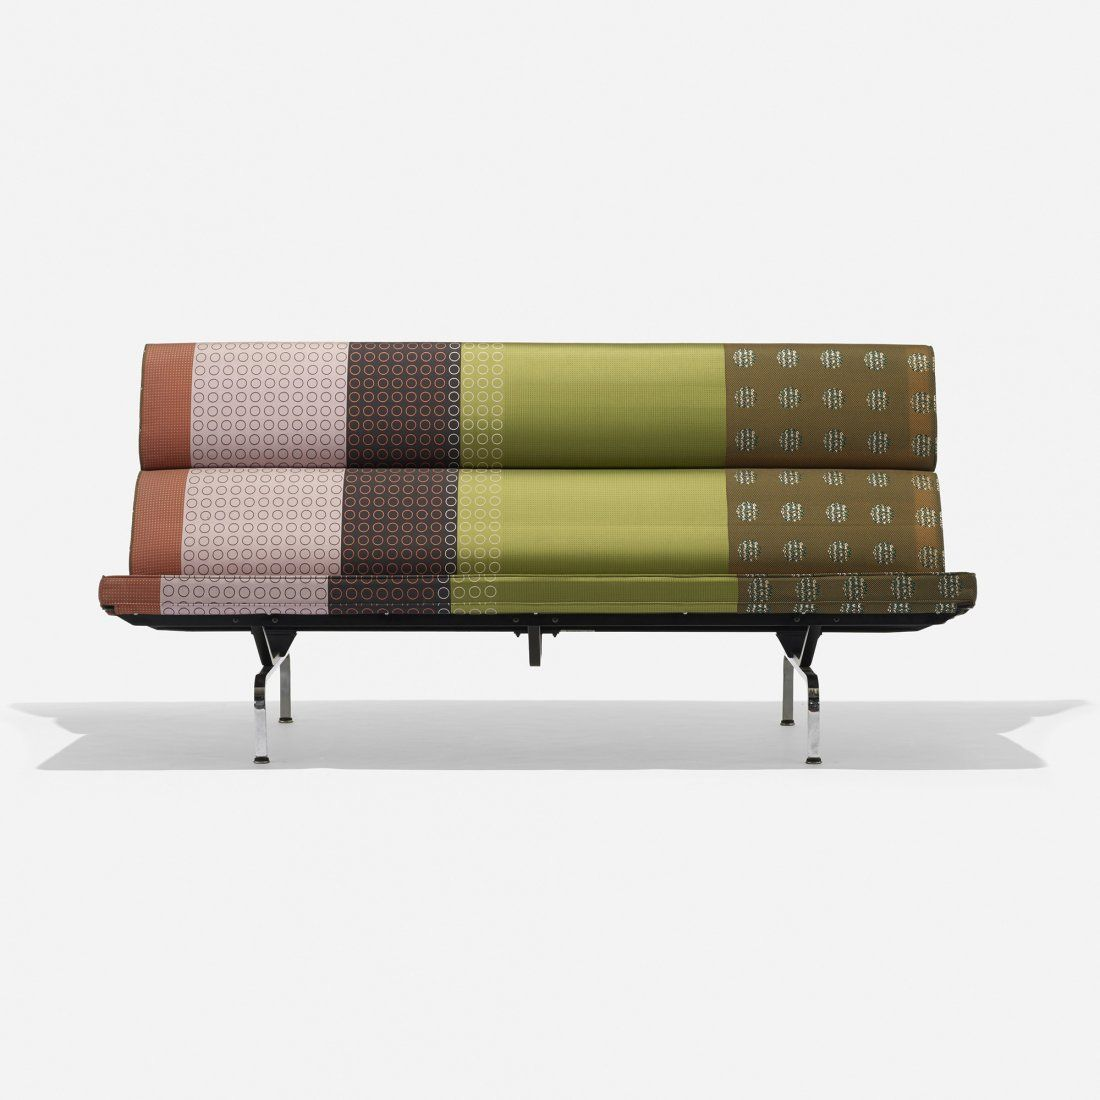 eames sofa compact cat urine on clean charles and ray herman miller usa